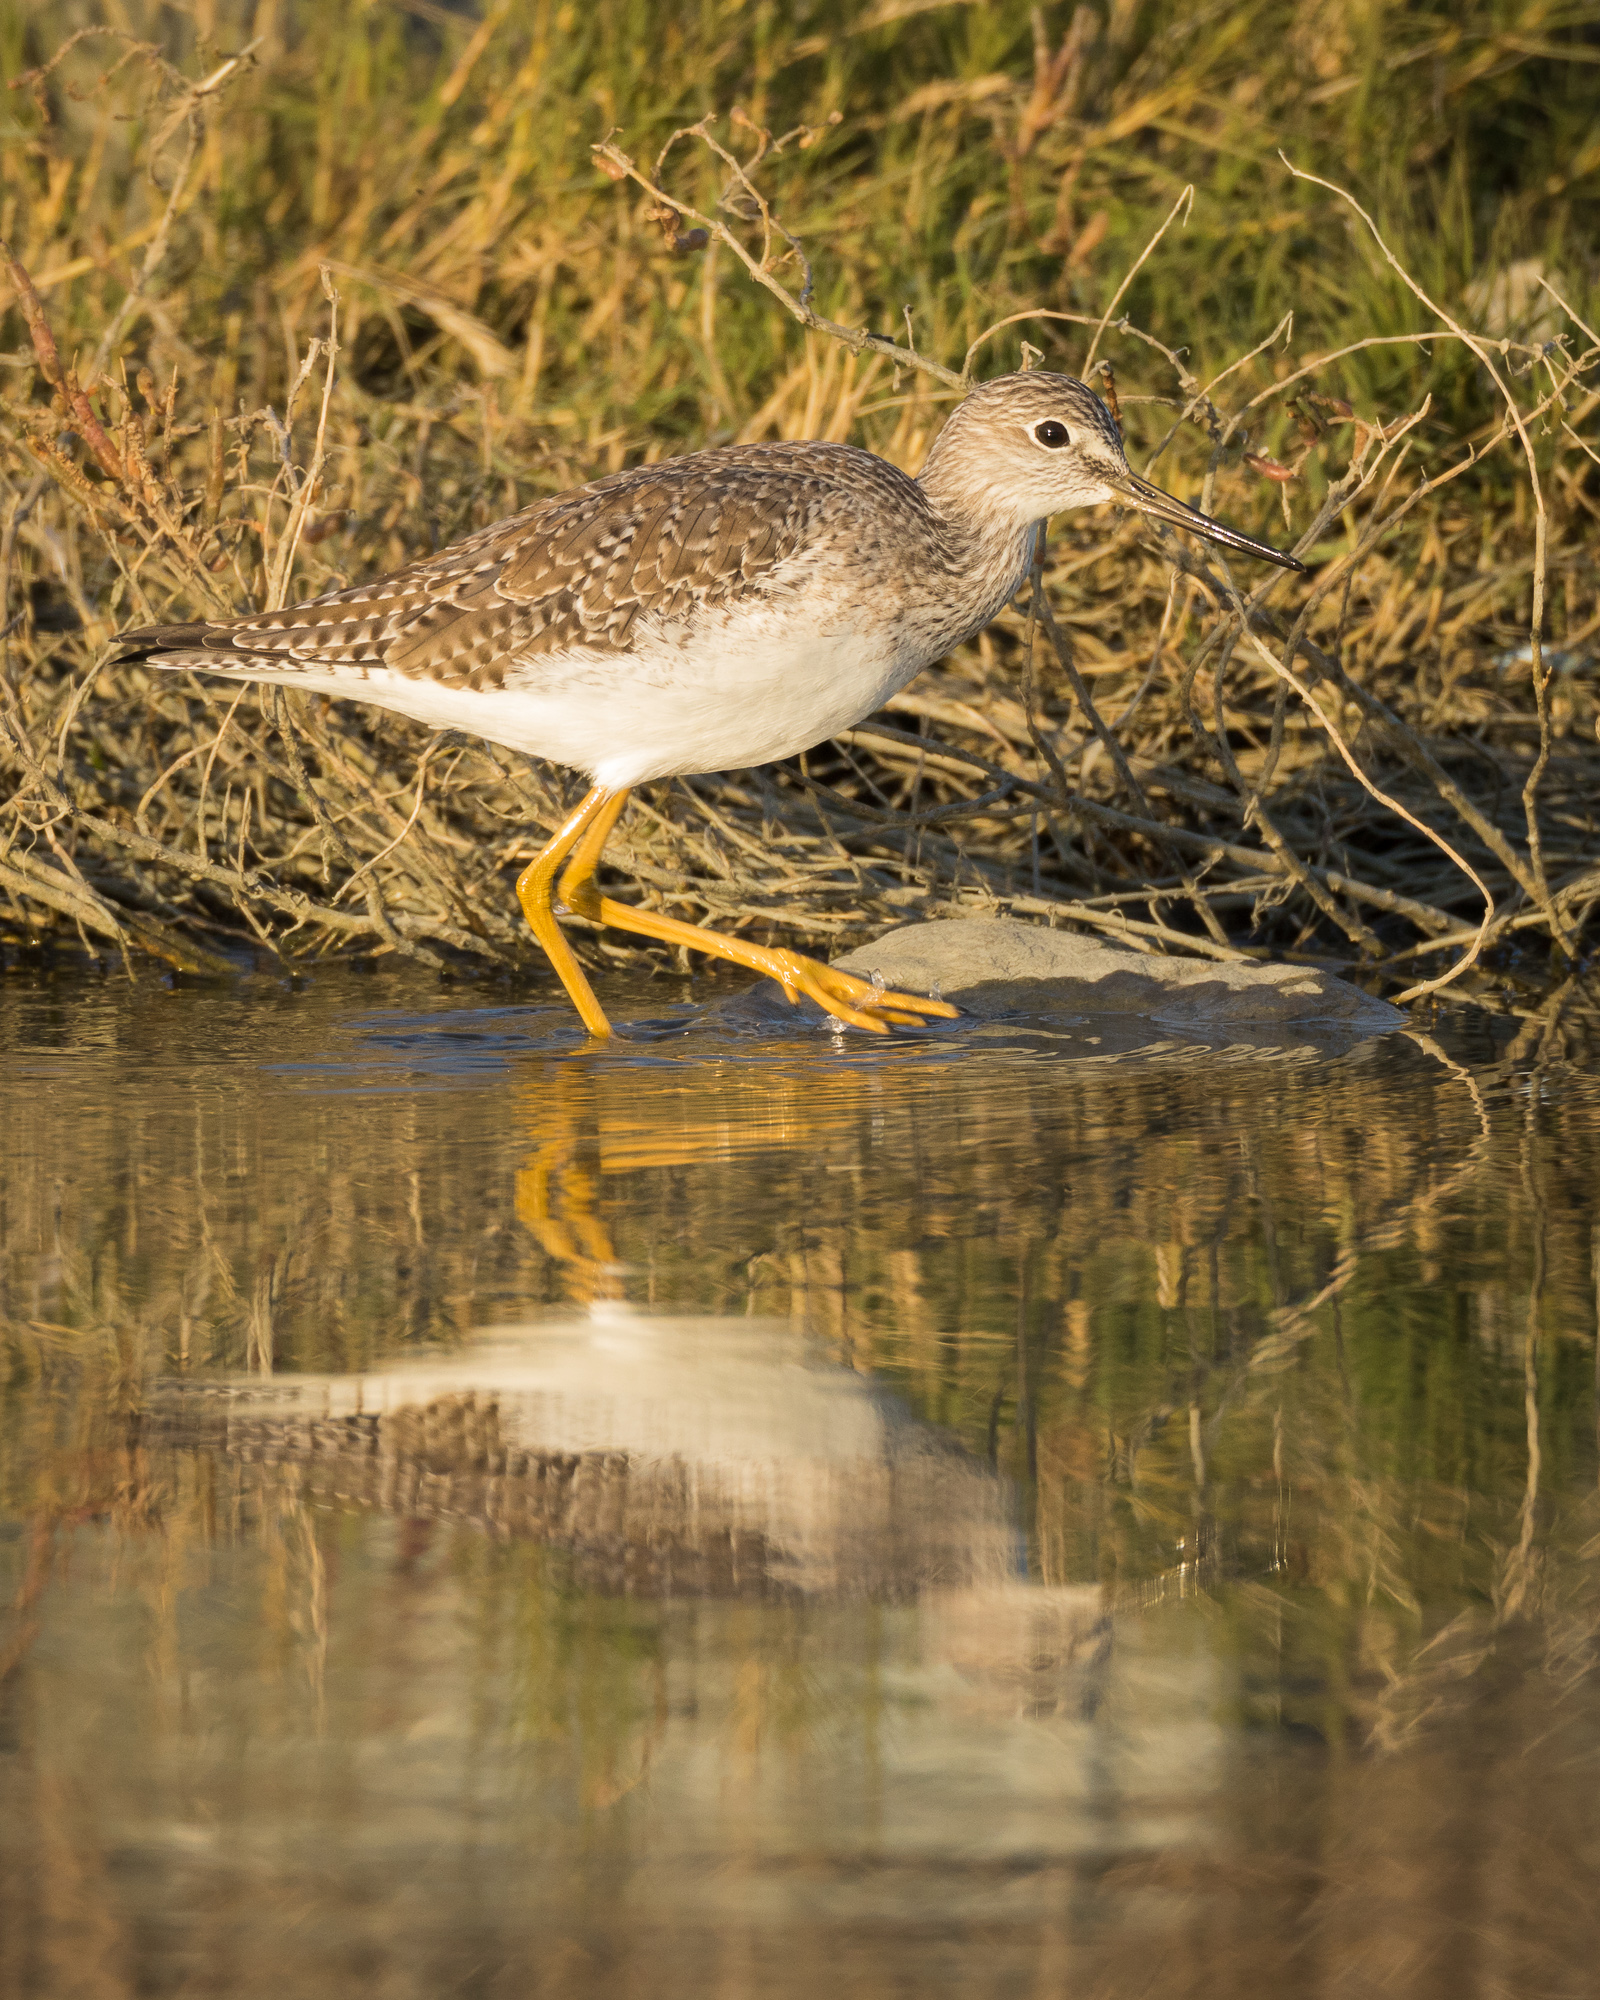 A greater yellowlegs stalks in shallow water, Redwood Shores, CA.